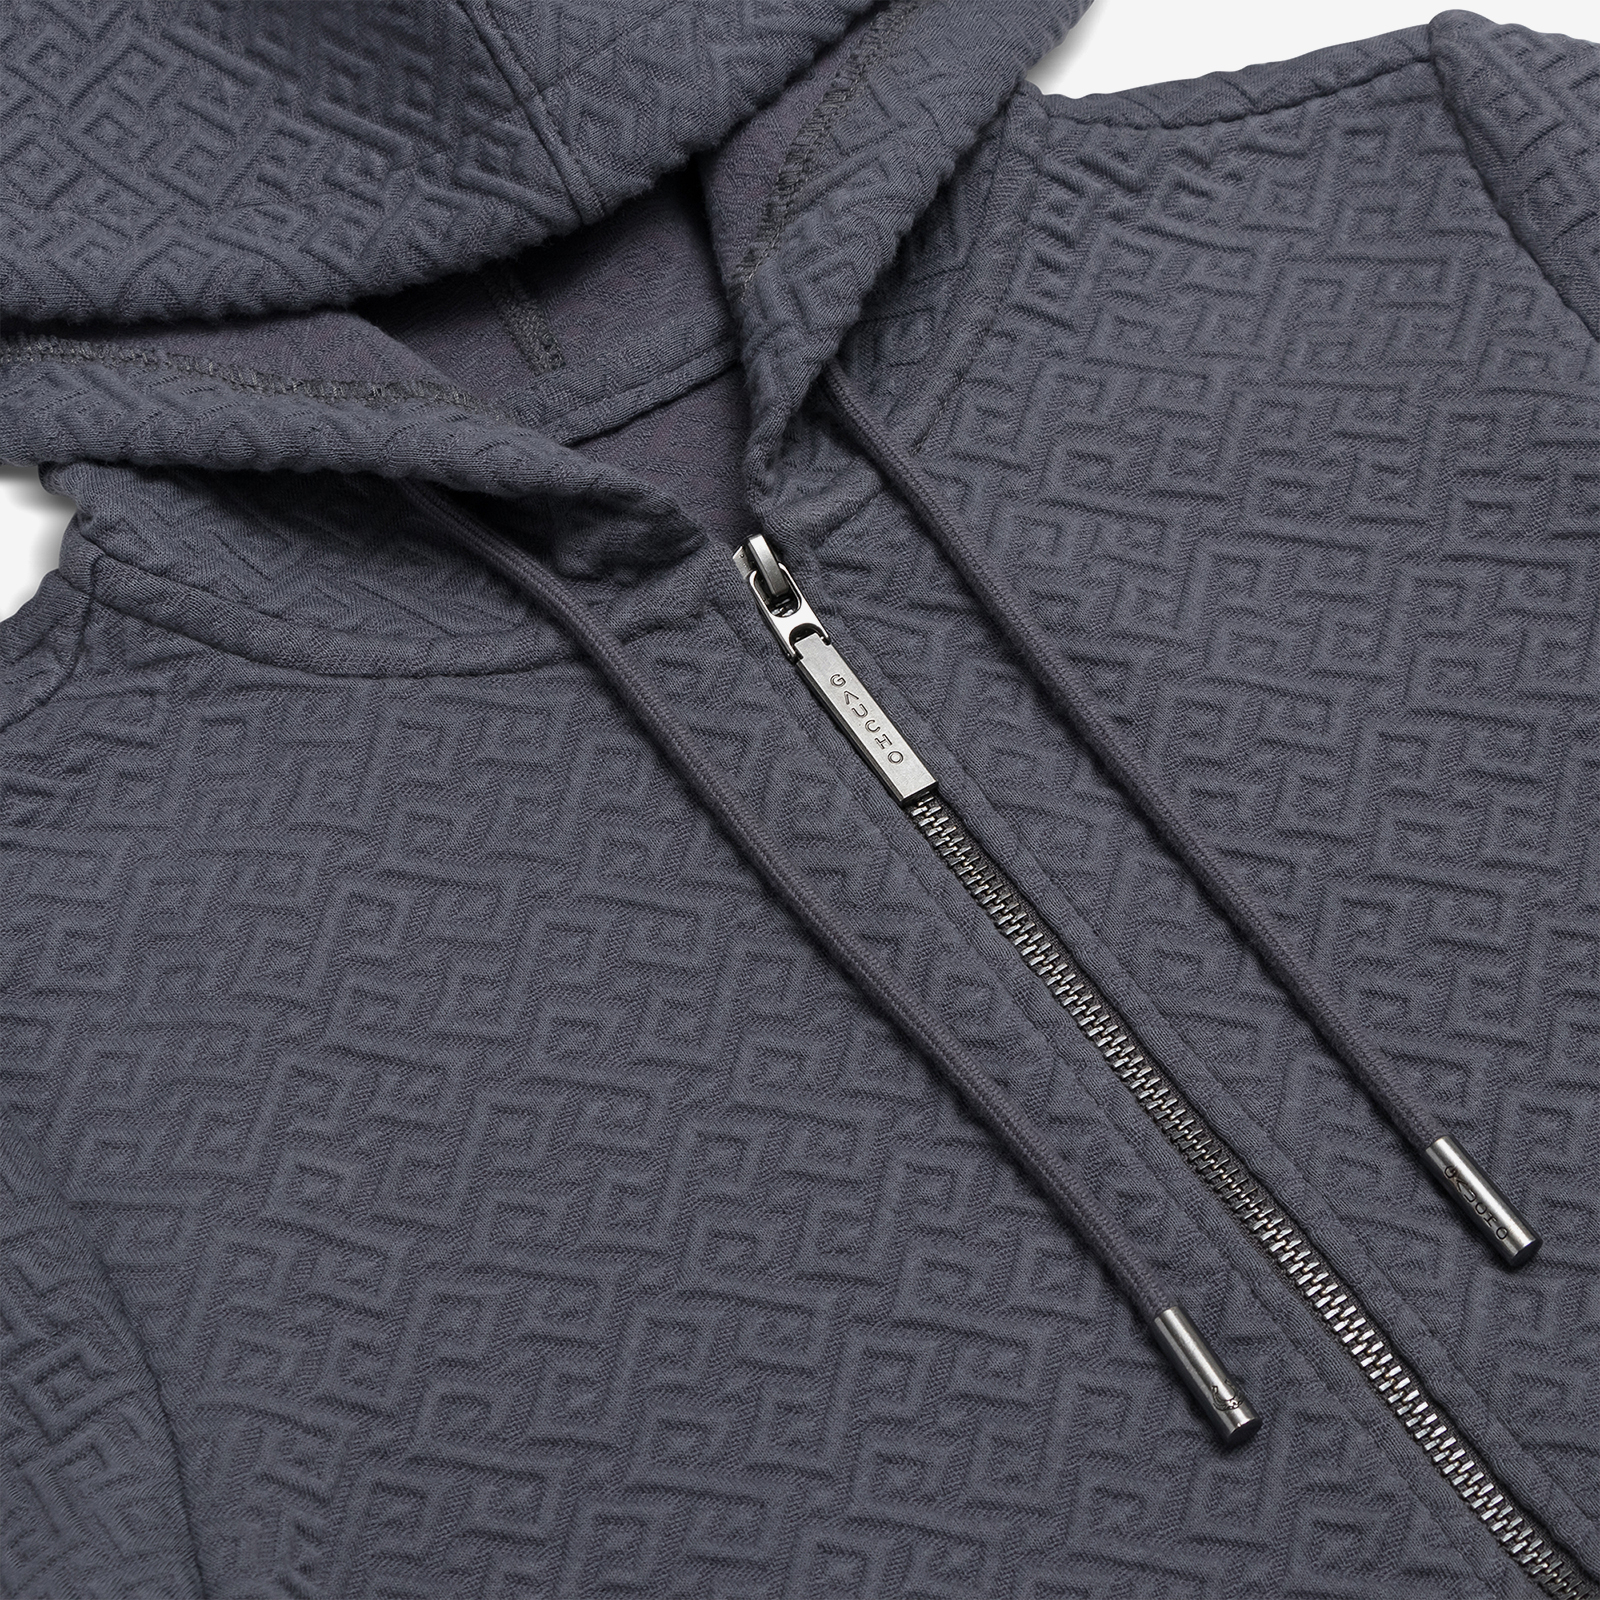 Apparel close up product photography